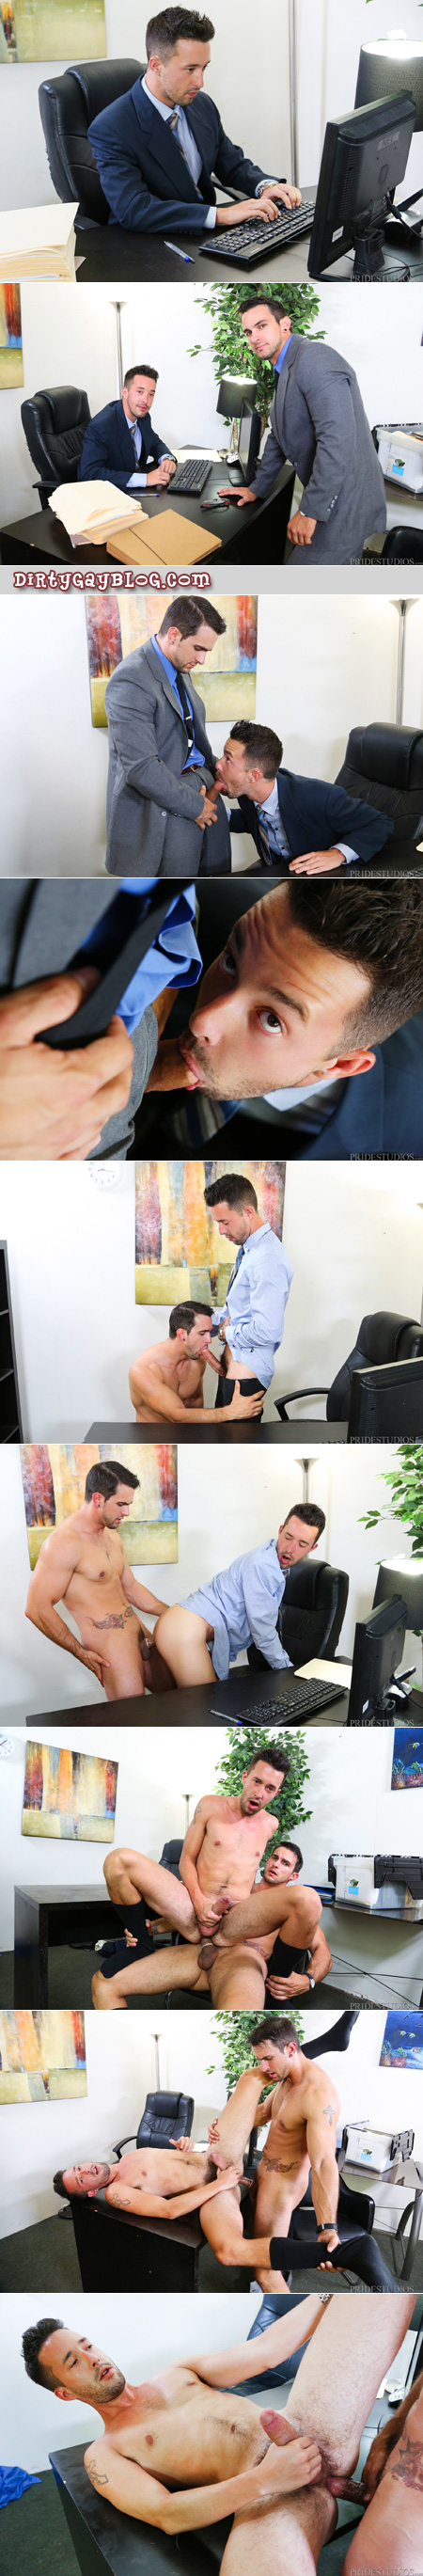 Young men in suits having clandestine gay sex at the office.